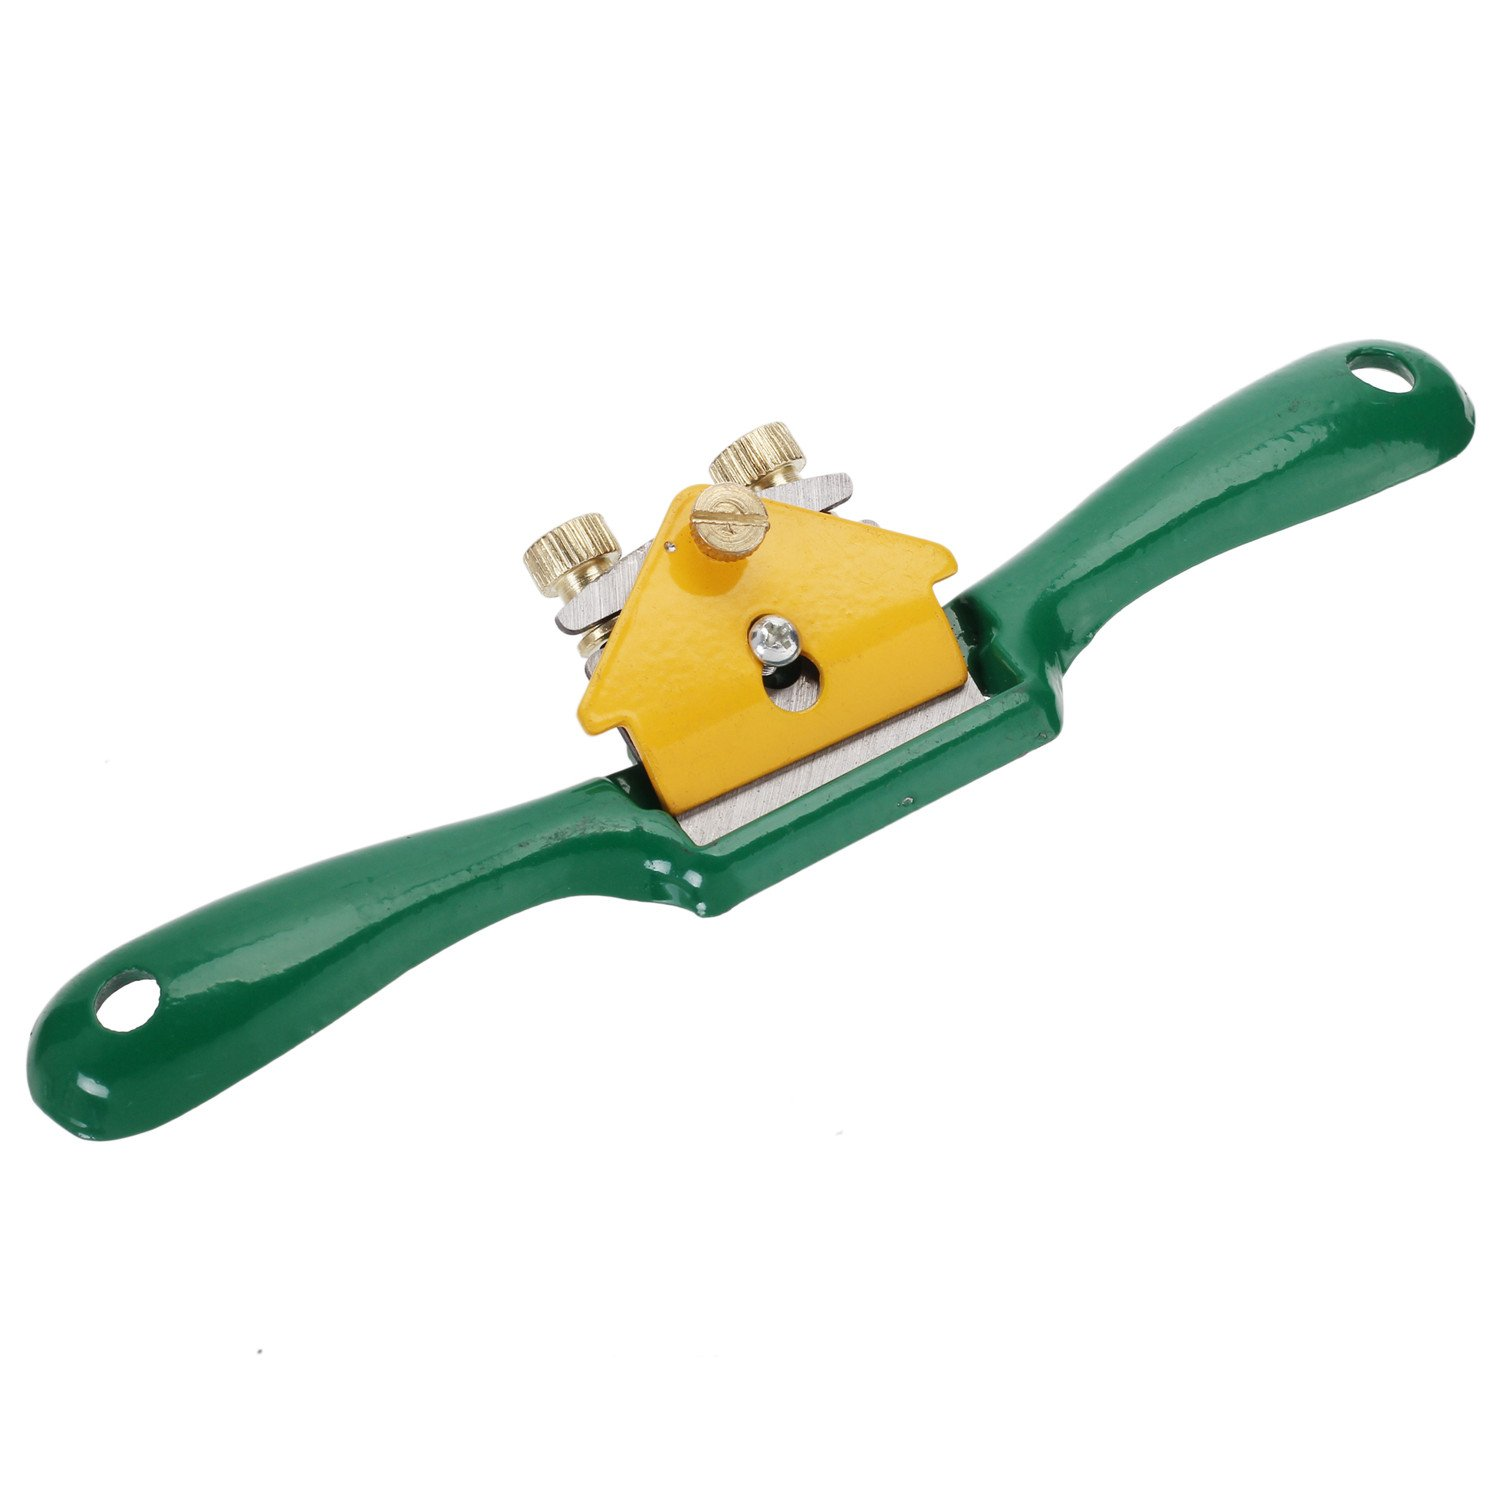 Refaxi 210mm Spoke Shave Manual Plane Planer Woodworking Blade Hand Tools Green by ReFaXi (Image #4)